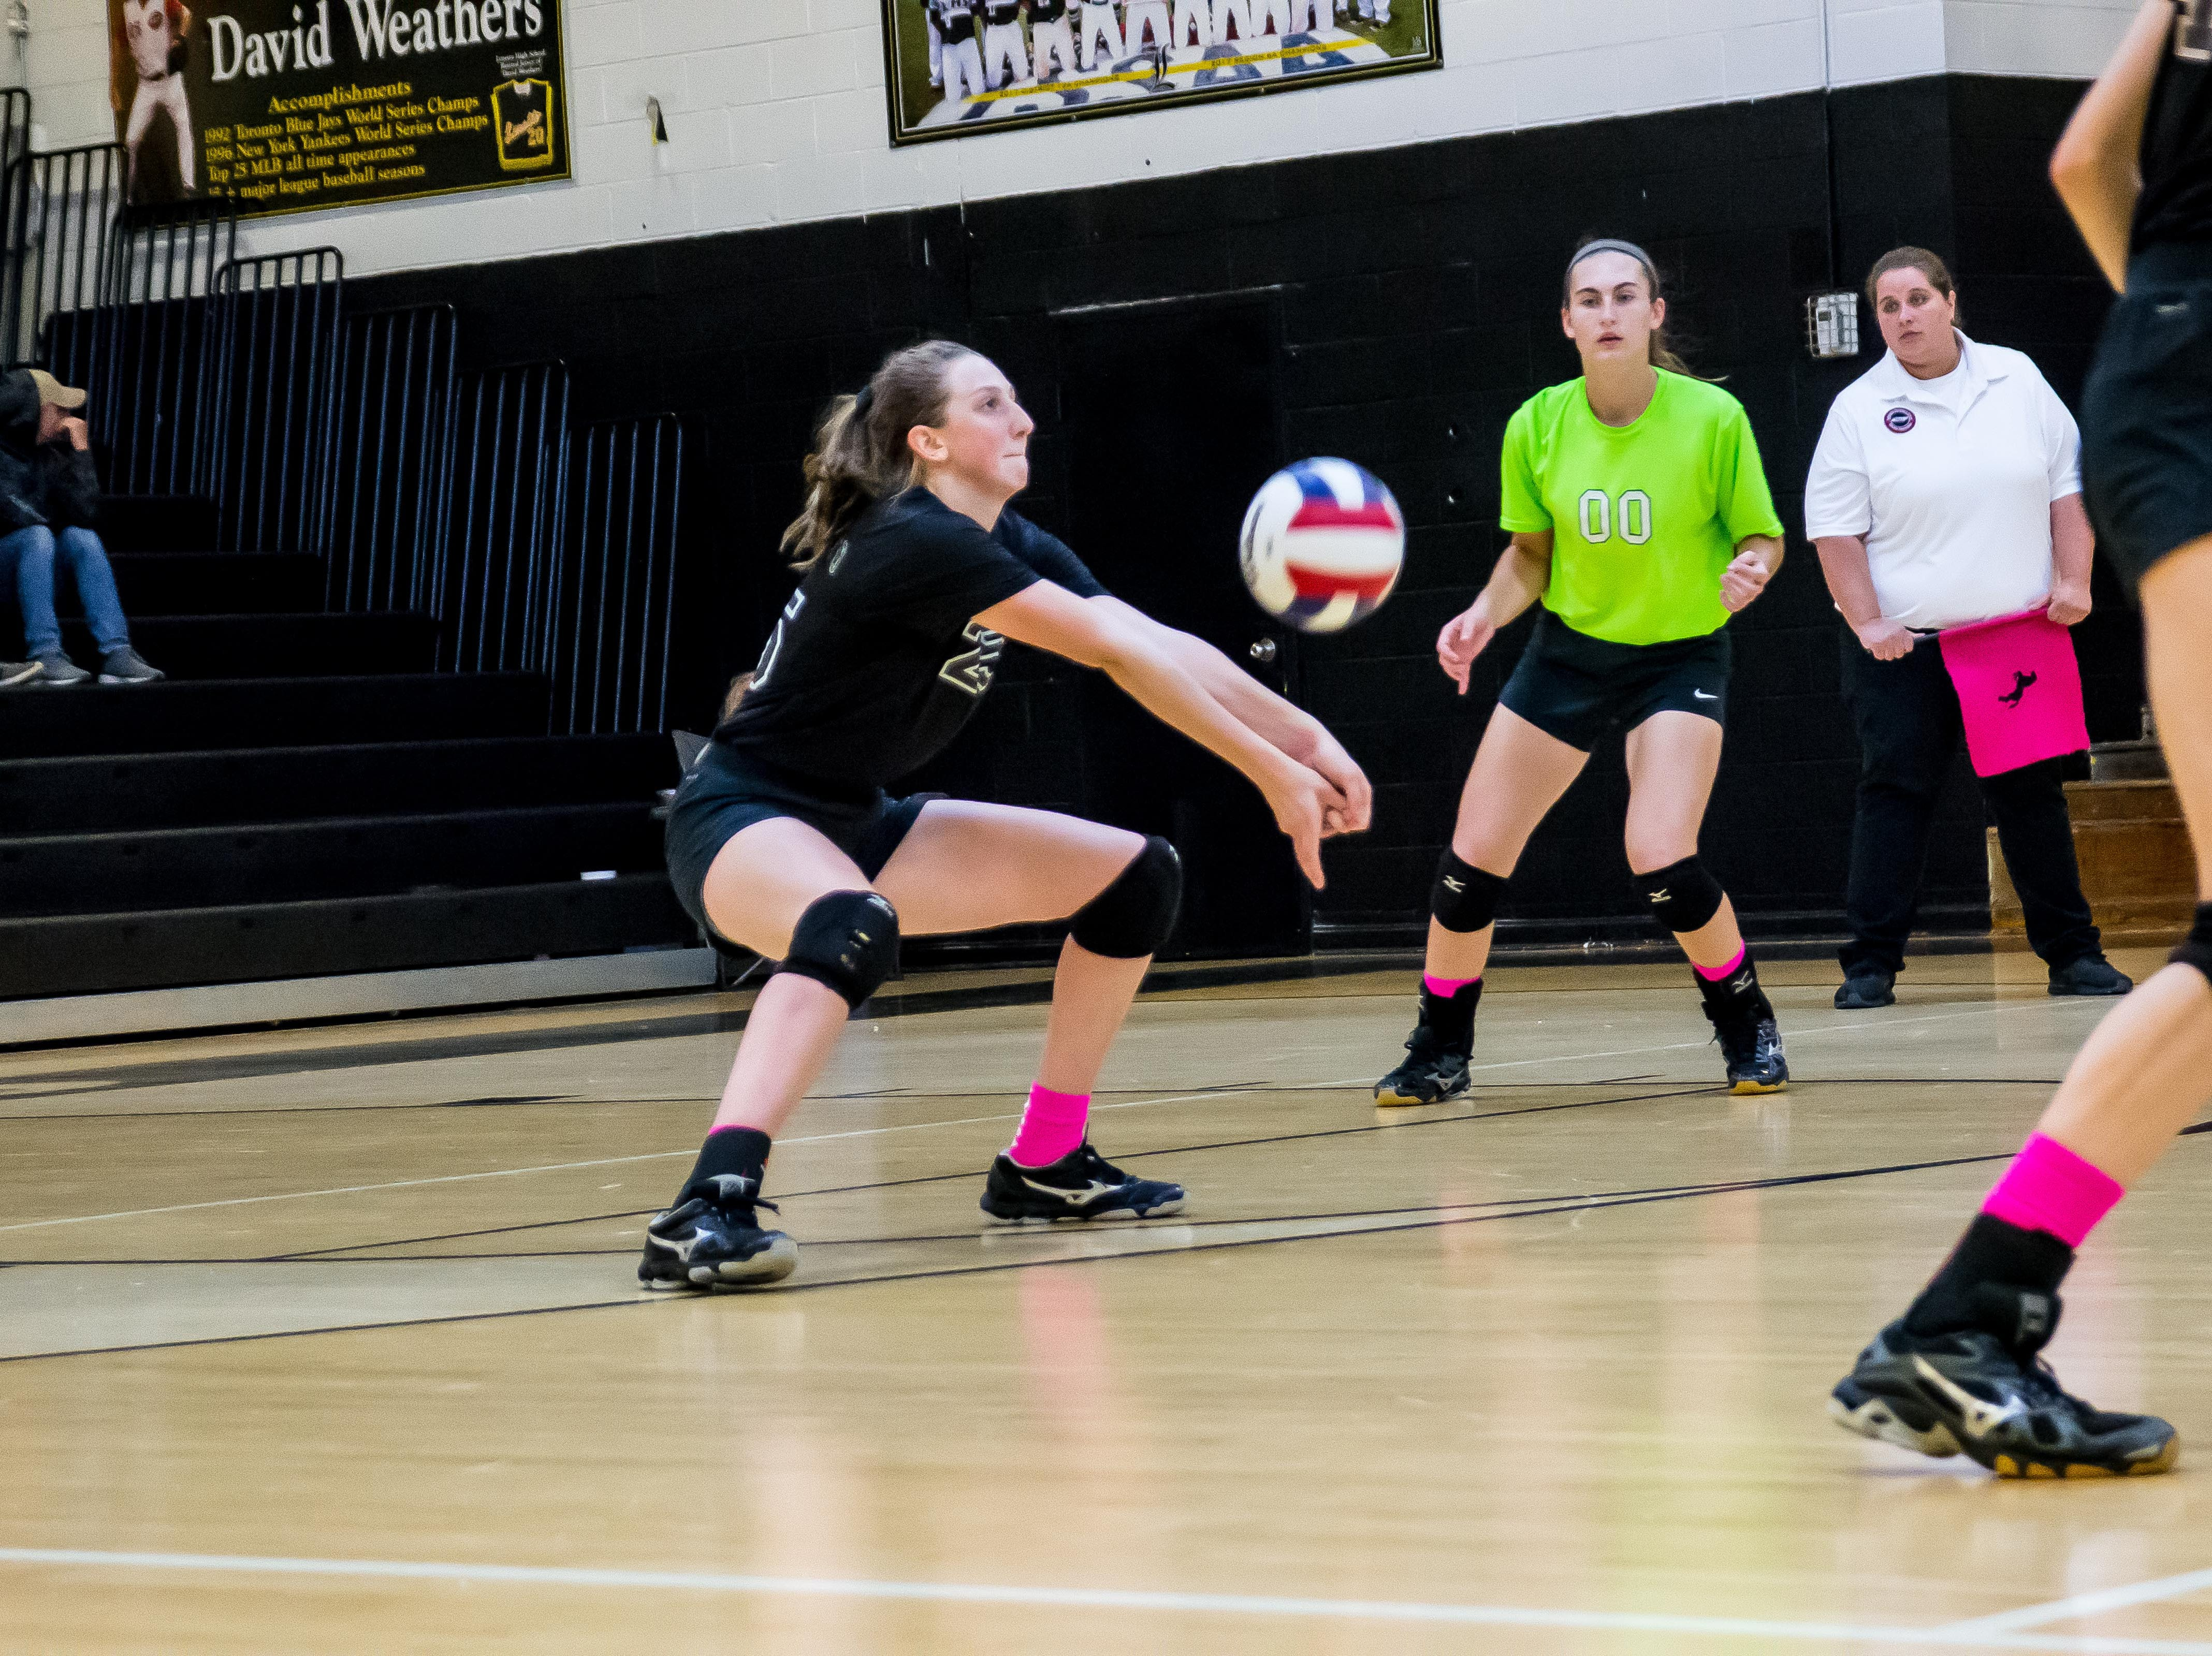 Loretto freshman Karly Weathers, the daughter of former MLB pitcher David Weathers, with the dig.